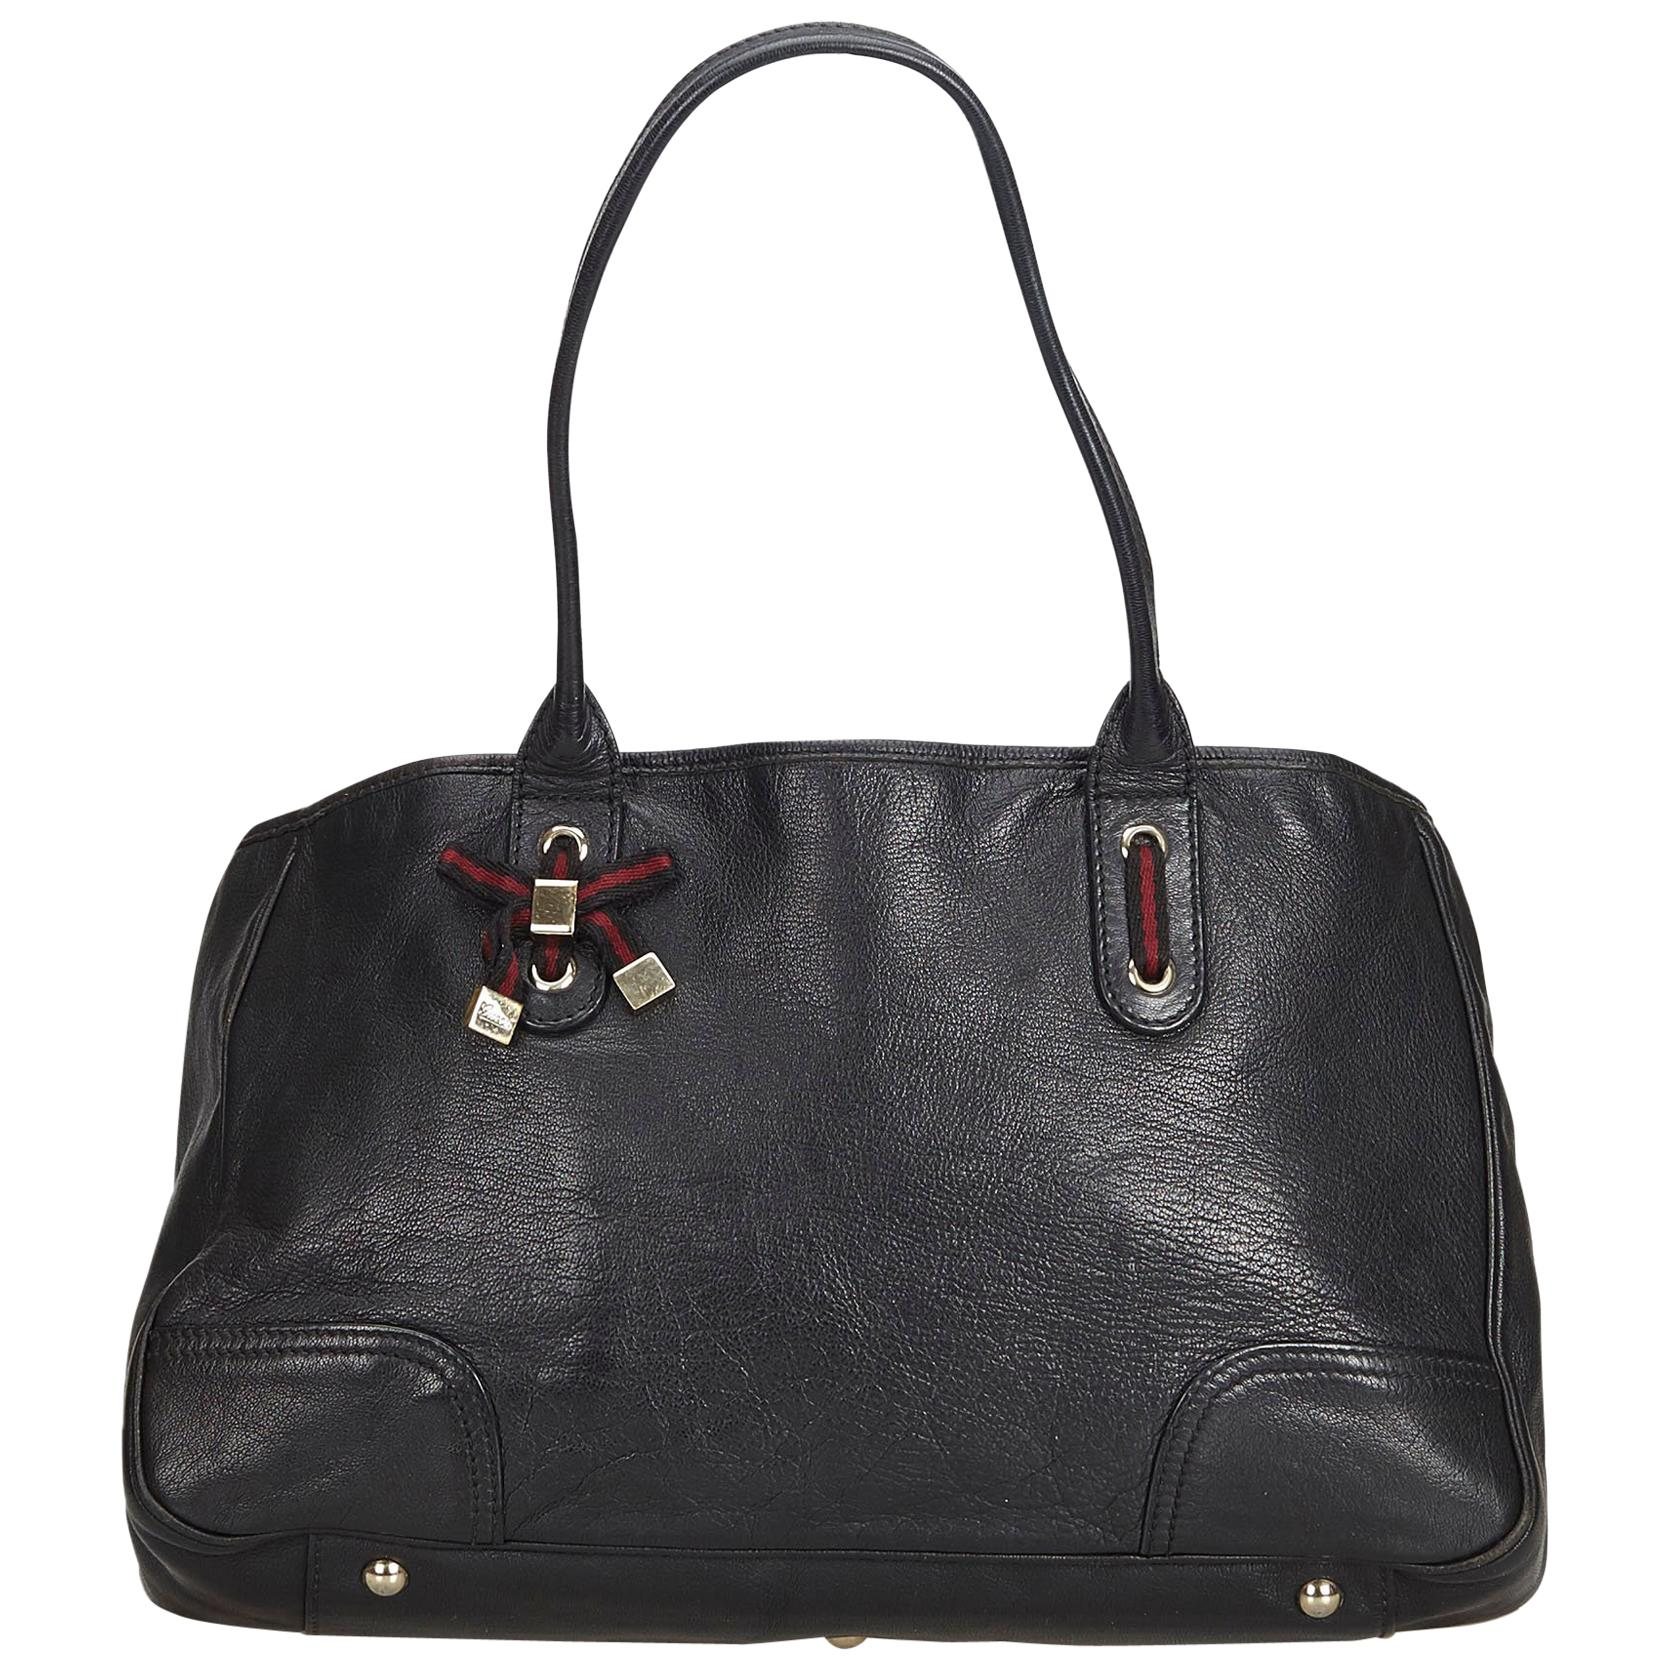 51183bcf3a Gucci Black Soho Large Leather Double-Chain-Strap Shoulder Bag at 1stdibs